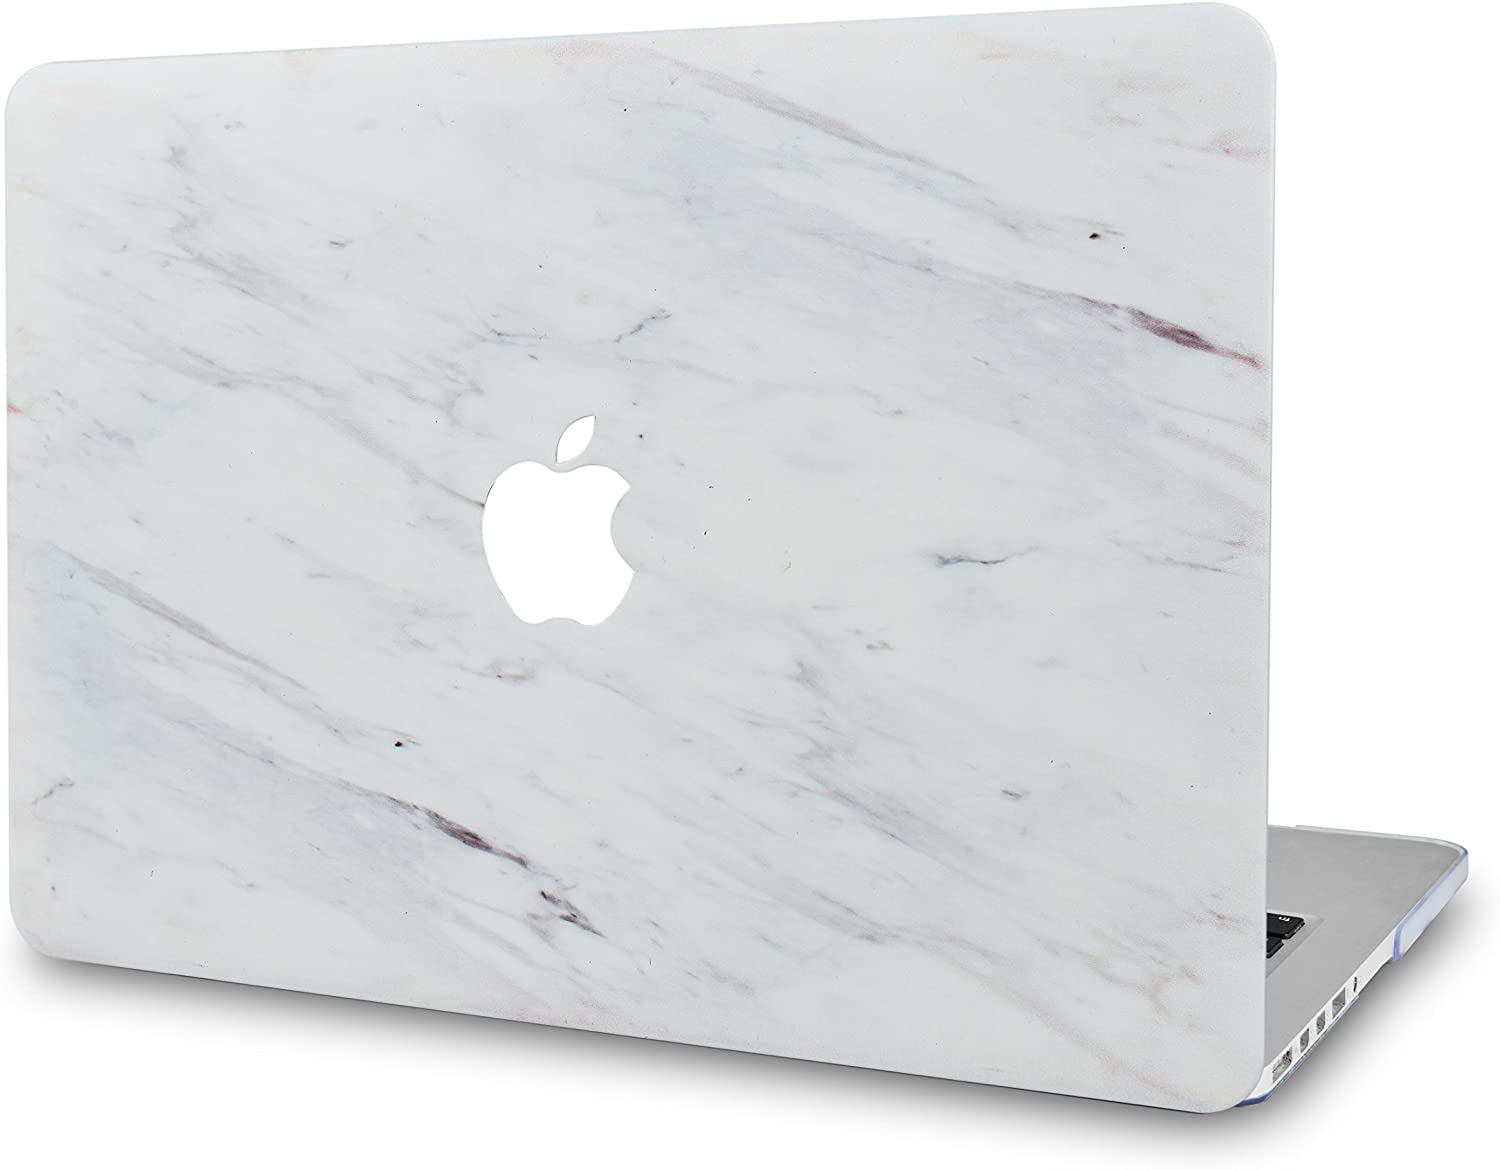 LuvCase Laptop Case for MacBook Air 13 Inch (2020/2019/2018) A2179/A1932 Retina Display (Touch ID) Rubberized Plastic Hard Shell Cover (Silk White Marble)